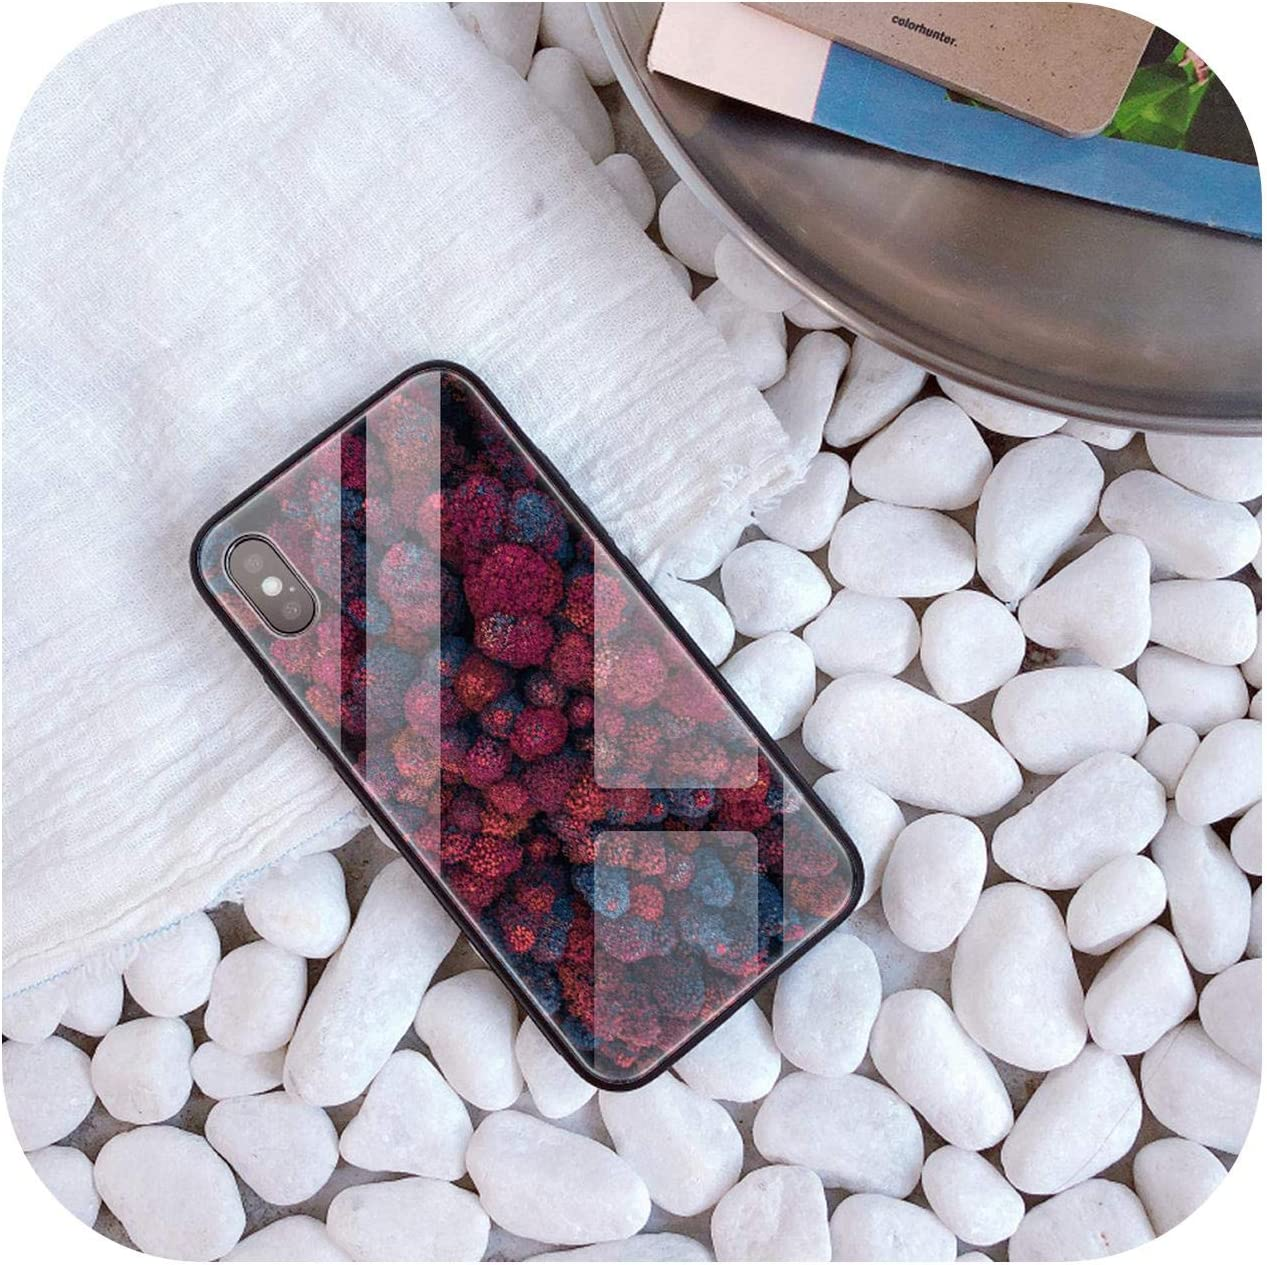 Amazon Com Cas Tempered Glass Customized Phone Cover For Iphone X R S 11 Pro Max Wallpaper Gorgeous Diy Phone Case For Iphone 7 8 6 S Plus 20280 For Iphone 11 Pro